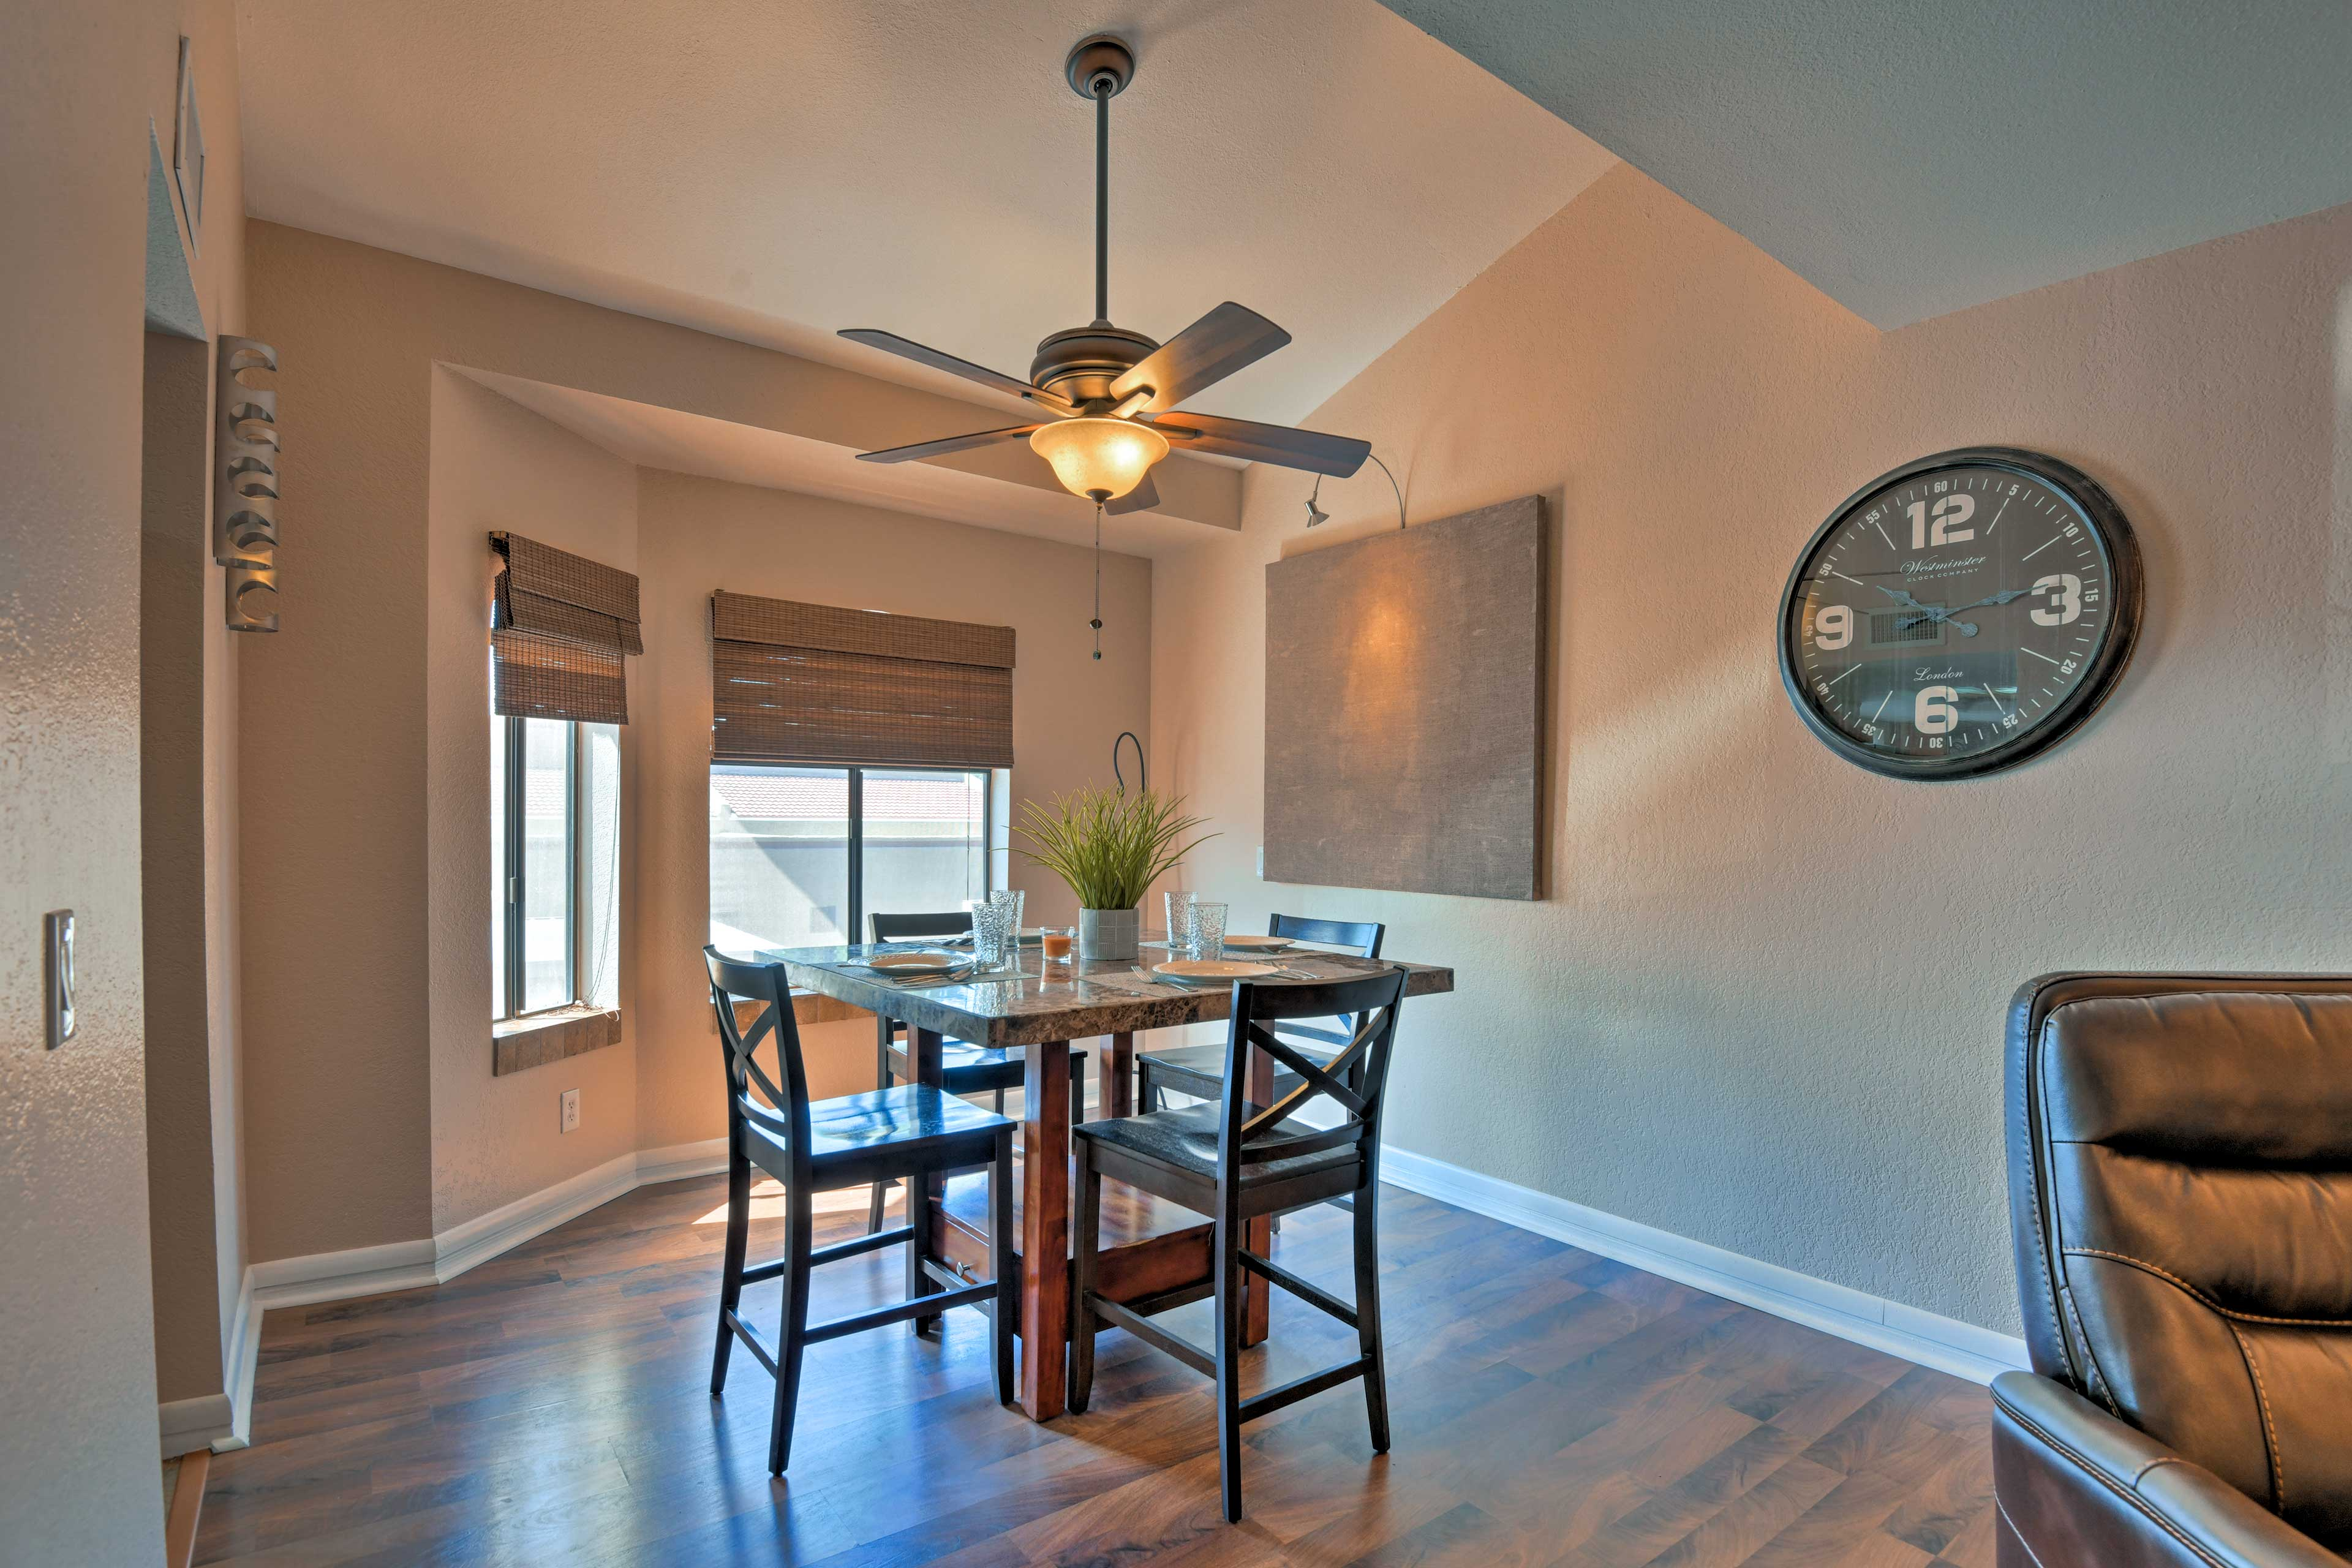 Discuss your plans for the day as you eat at the 4-person dining table.